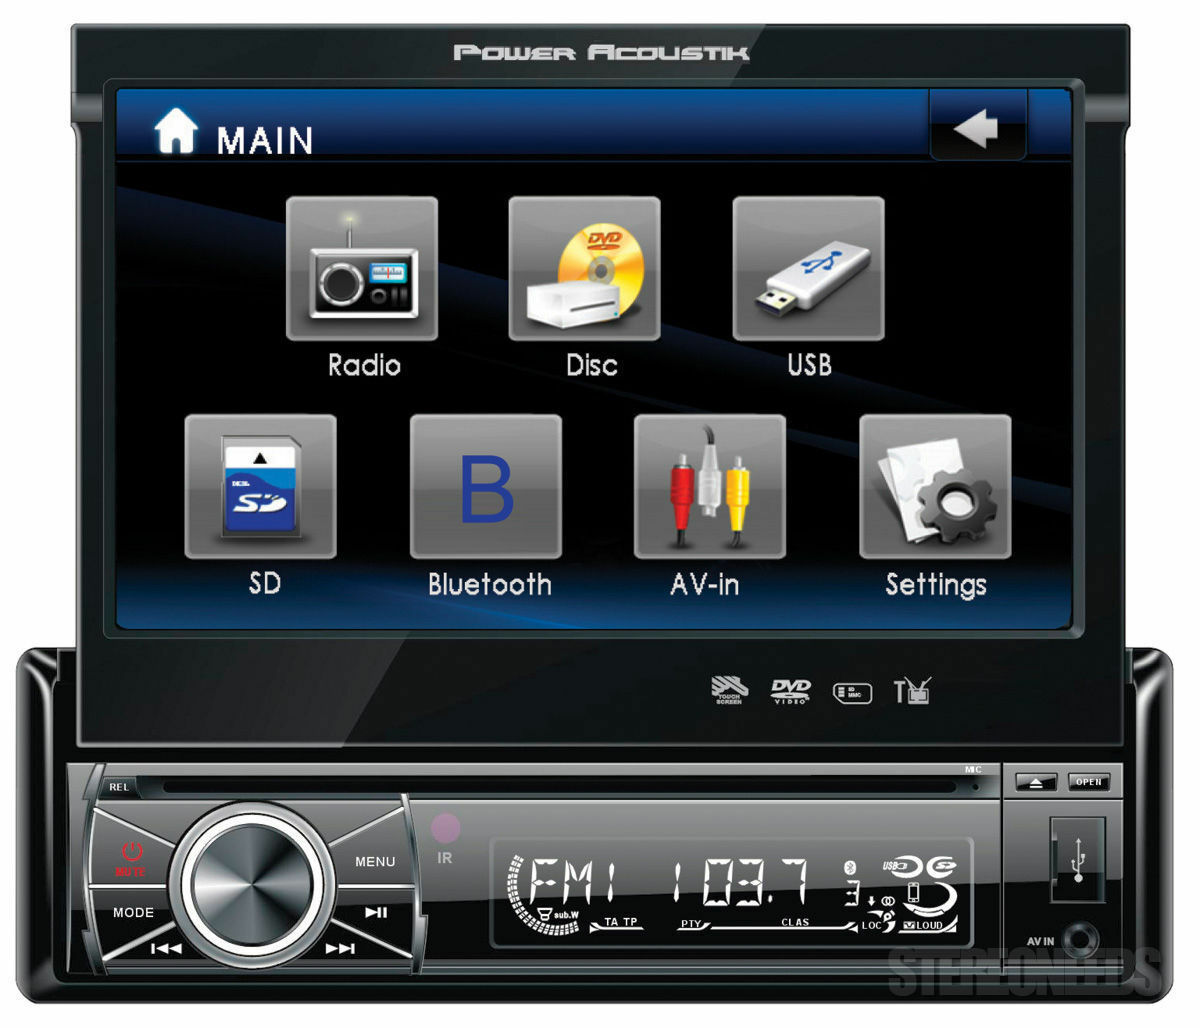 s l1600 power acoustik video in dash units without gps ebay Power Acoustik PD-710 Screen Reselotion at soozxer.org